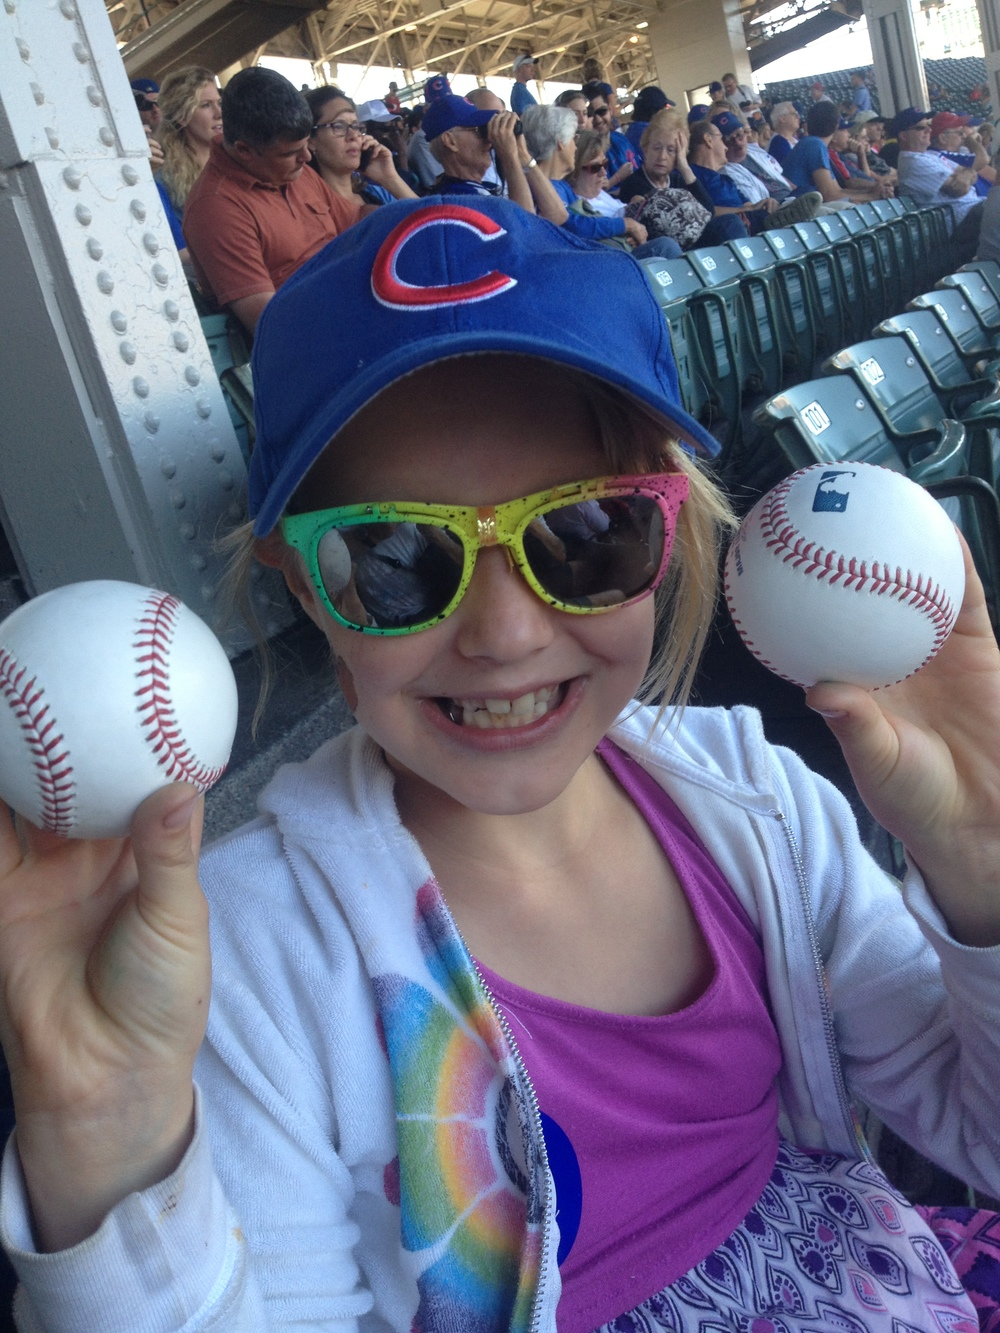 Alex the Girl Scout at the Cubs Game!